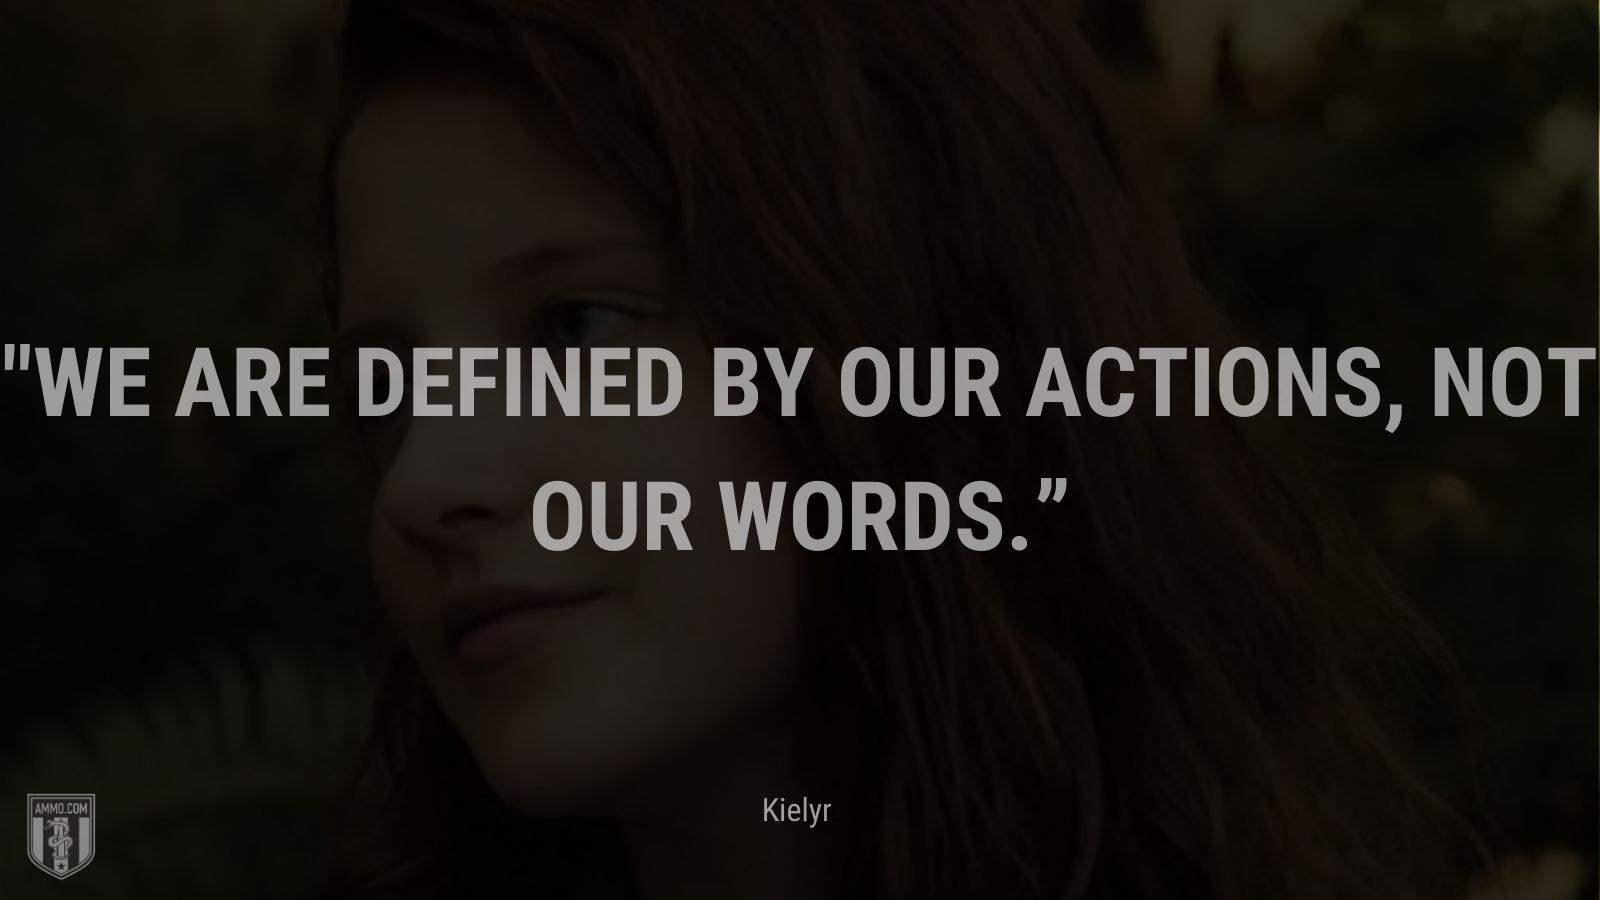 """""""We are defined by our actions, not our words."""" - Kielyr, Captain Fantastic"""